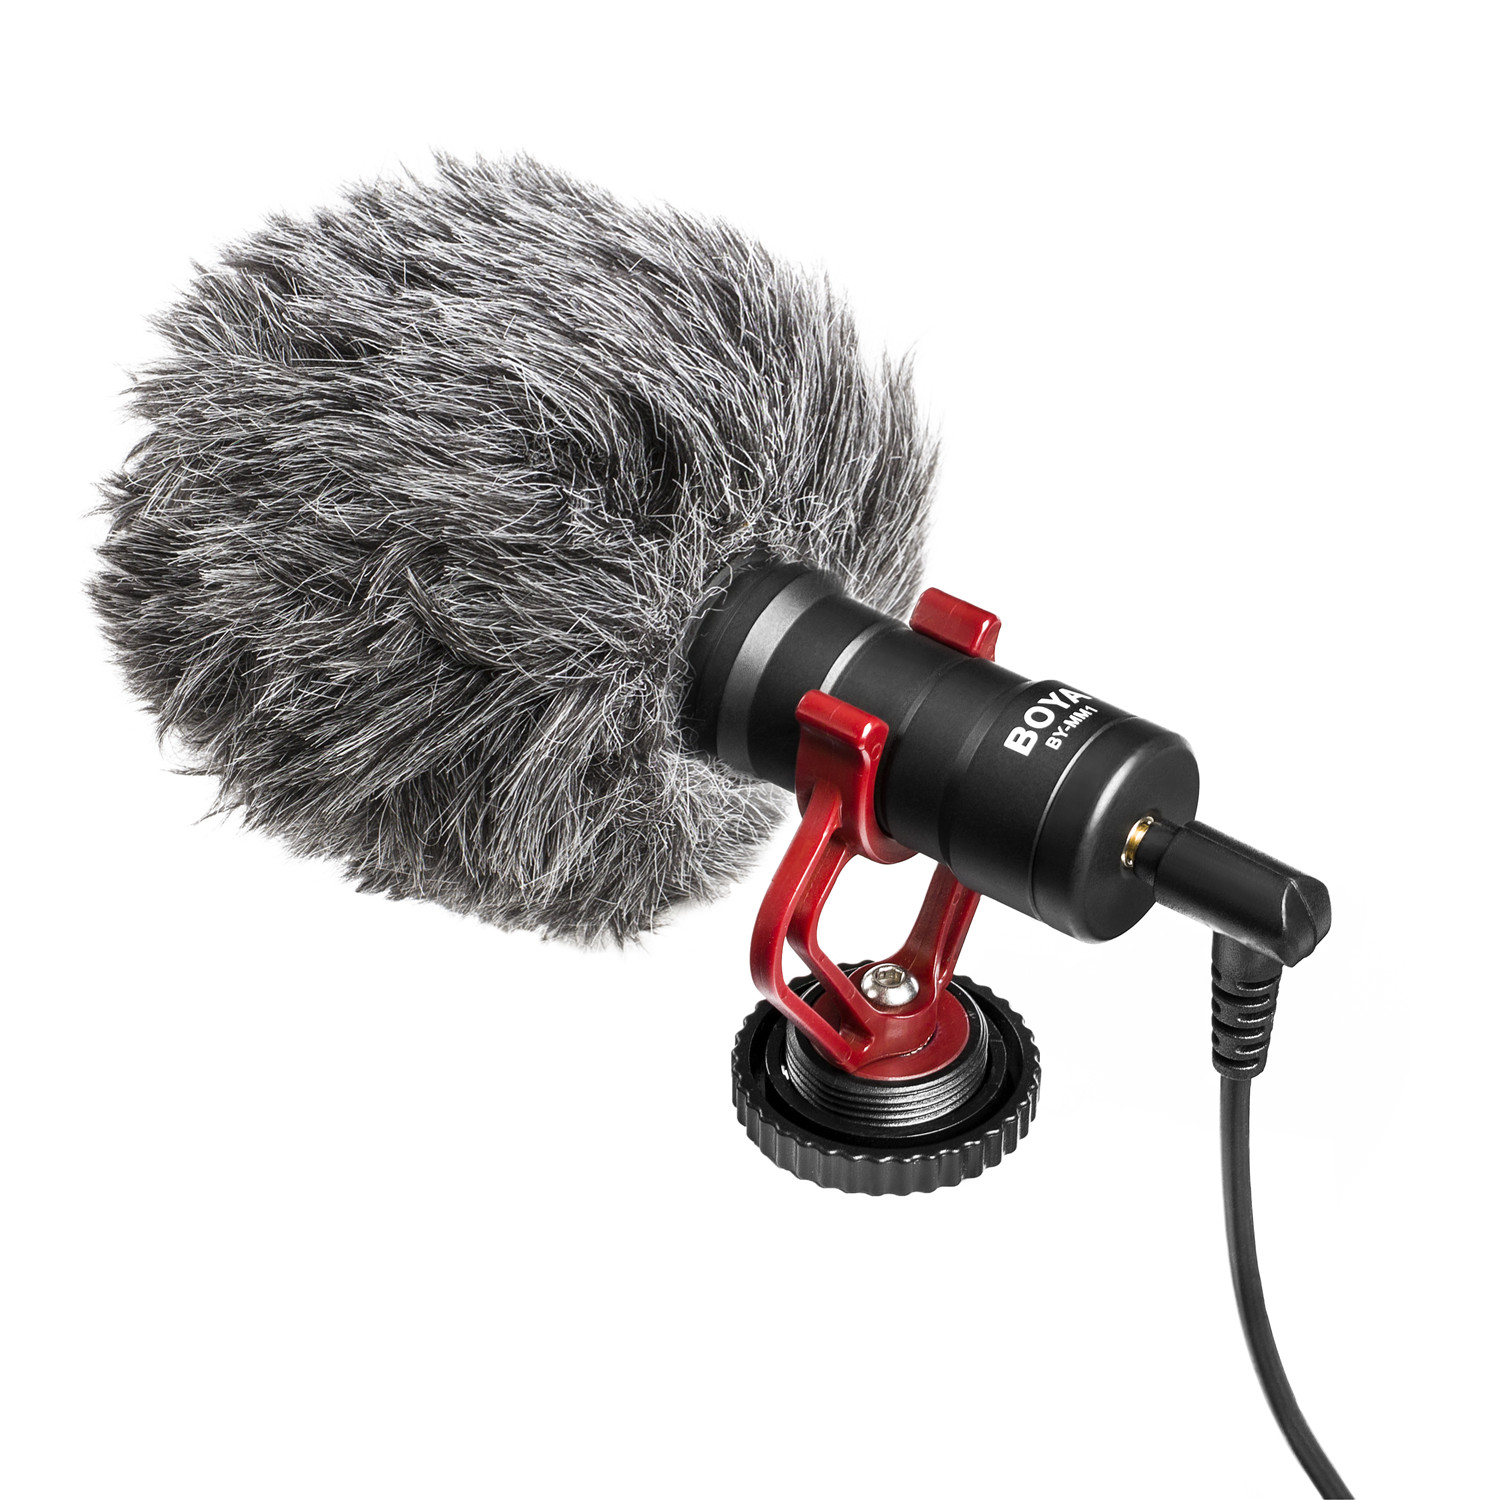 BOYA BY-MM1+ Super Cardioid Shotgun Microphone 3.5mm Headphone TRS TRRS Output For Smartphone Tablets DSLR Consumer Camcorder PC